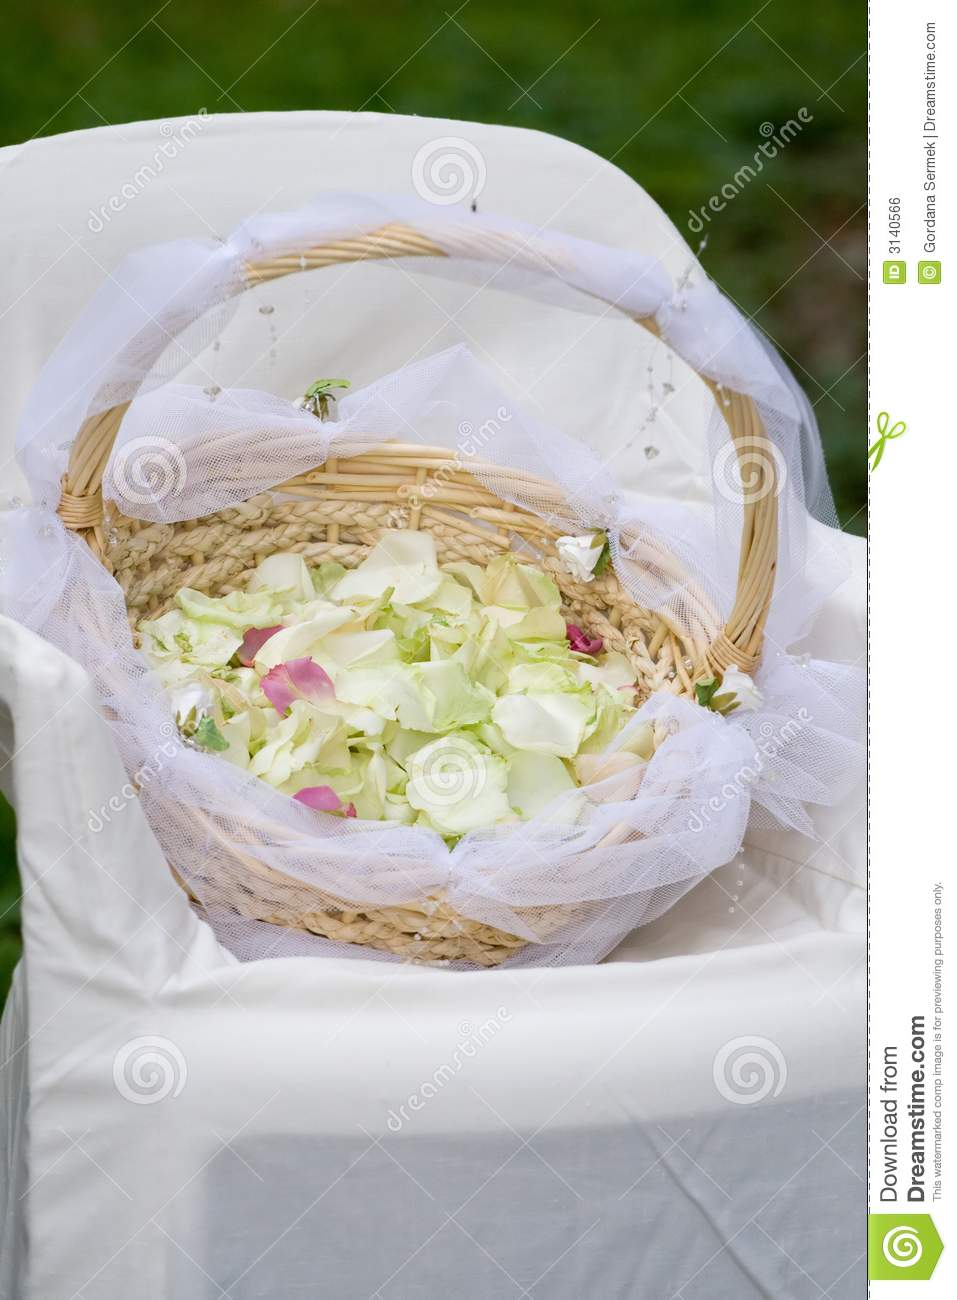 Basket with rose petals